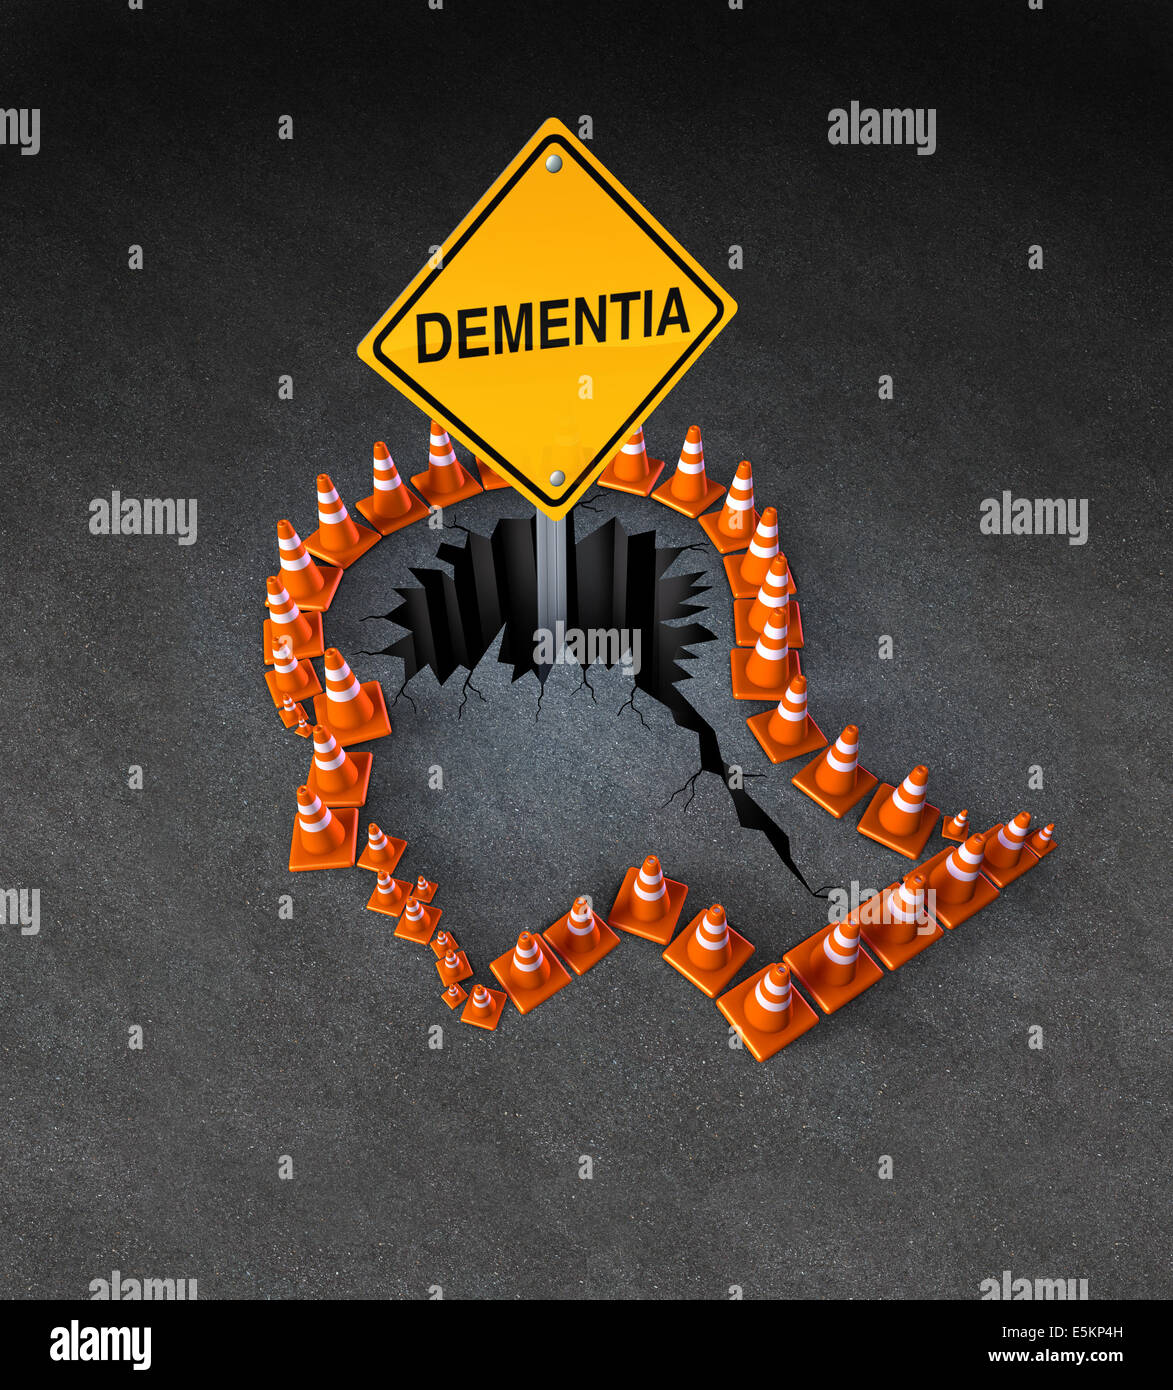 Dementia handicap concept as a group of three dimensional traffic cones shaped as a human head with a warning road - Stock Image